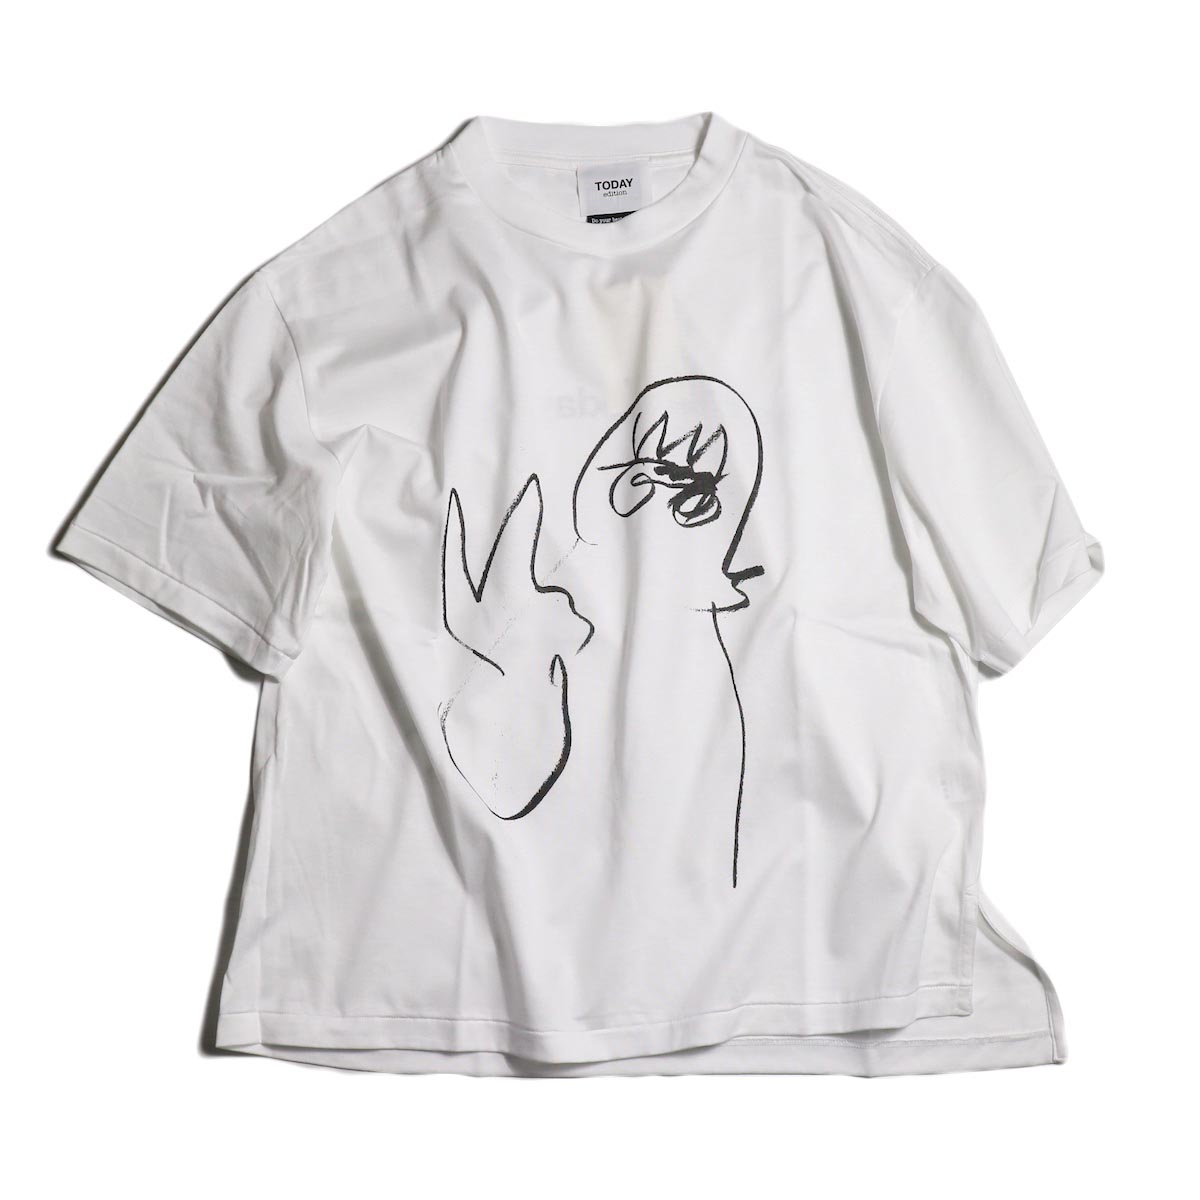 TODAY edition / drawing tee #4 -White